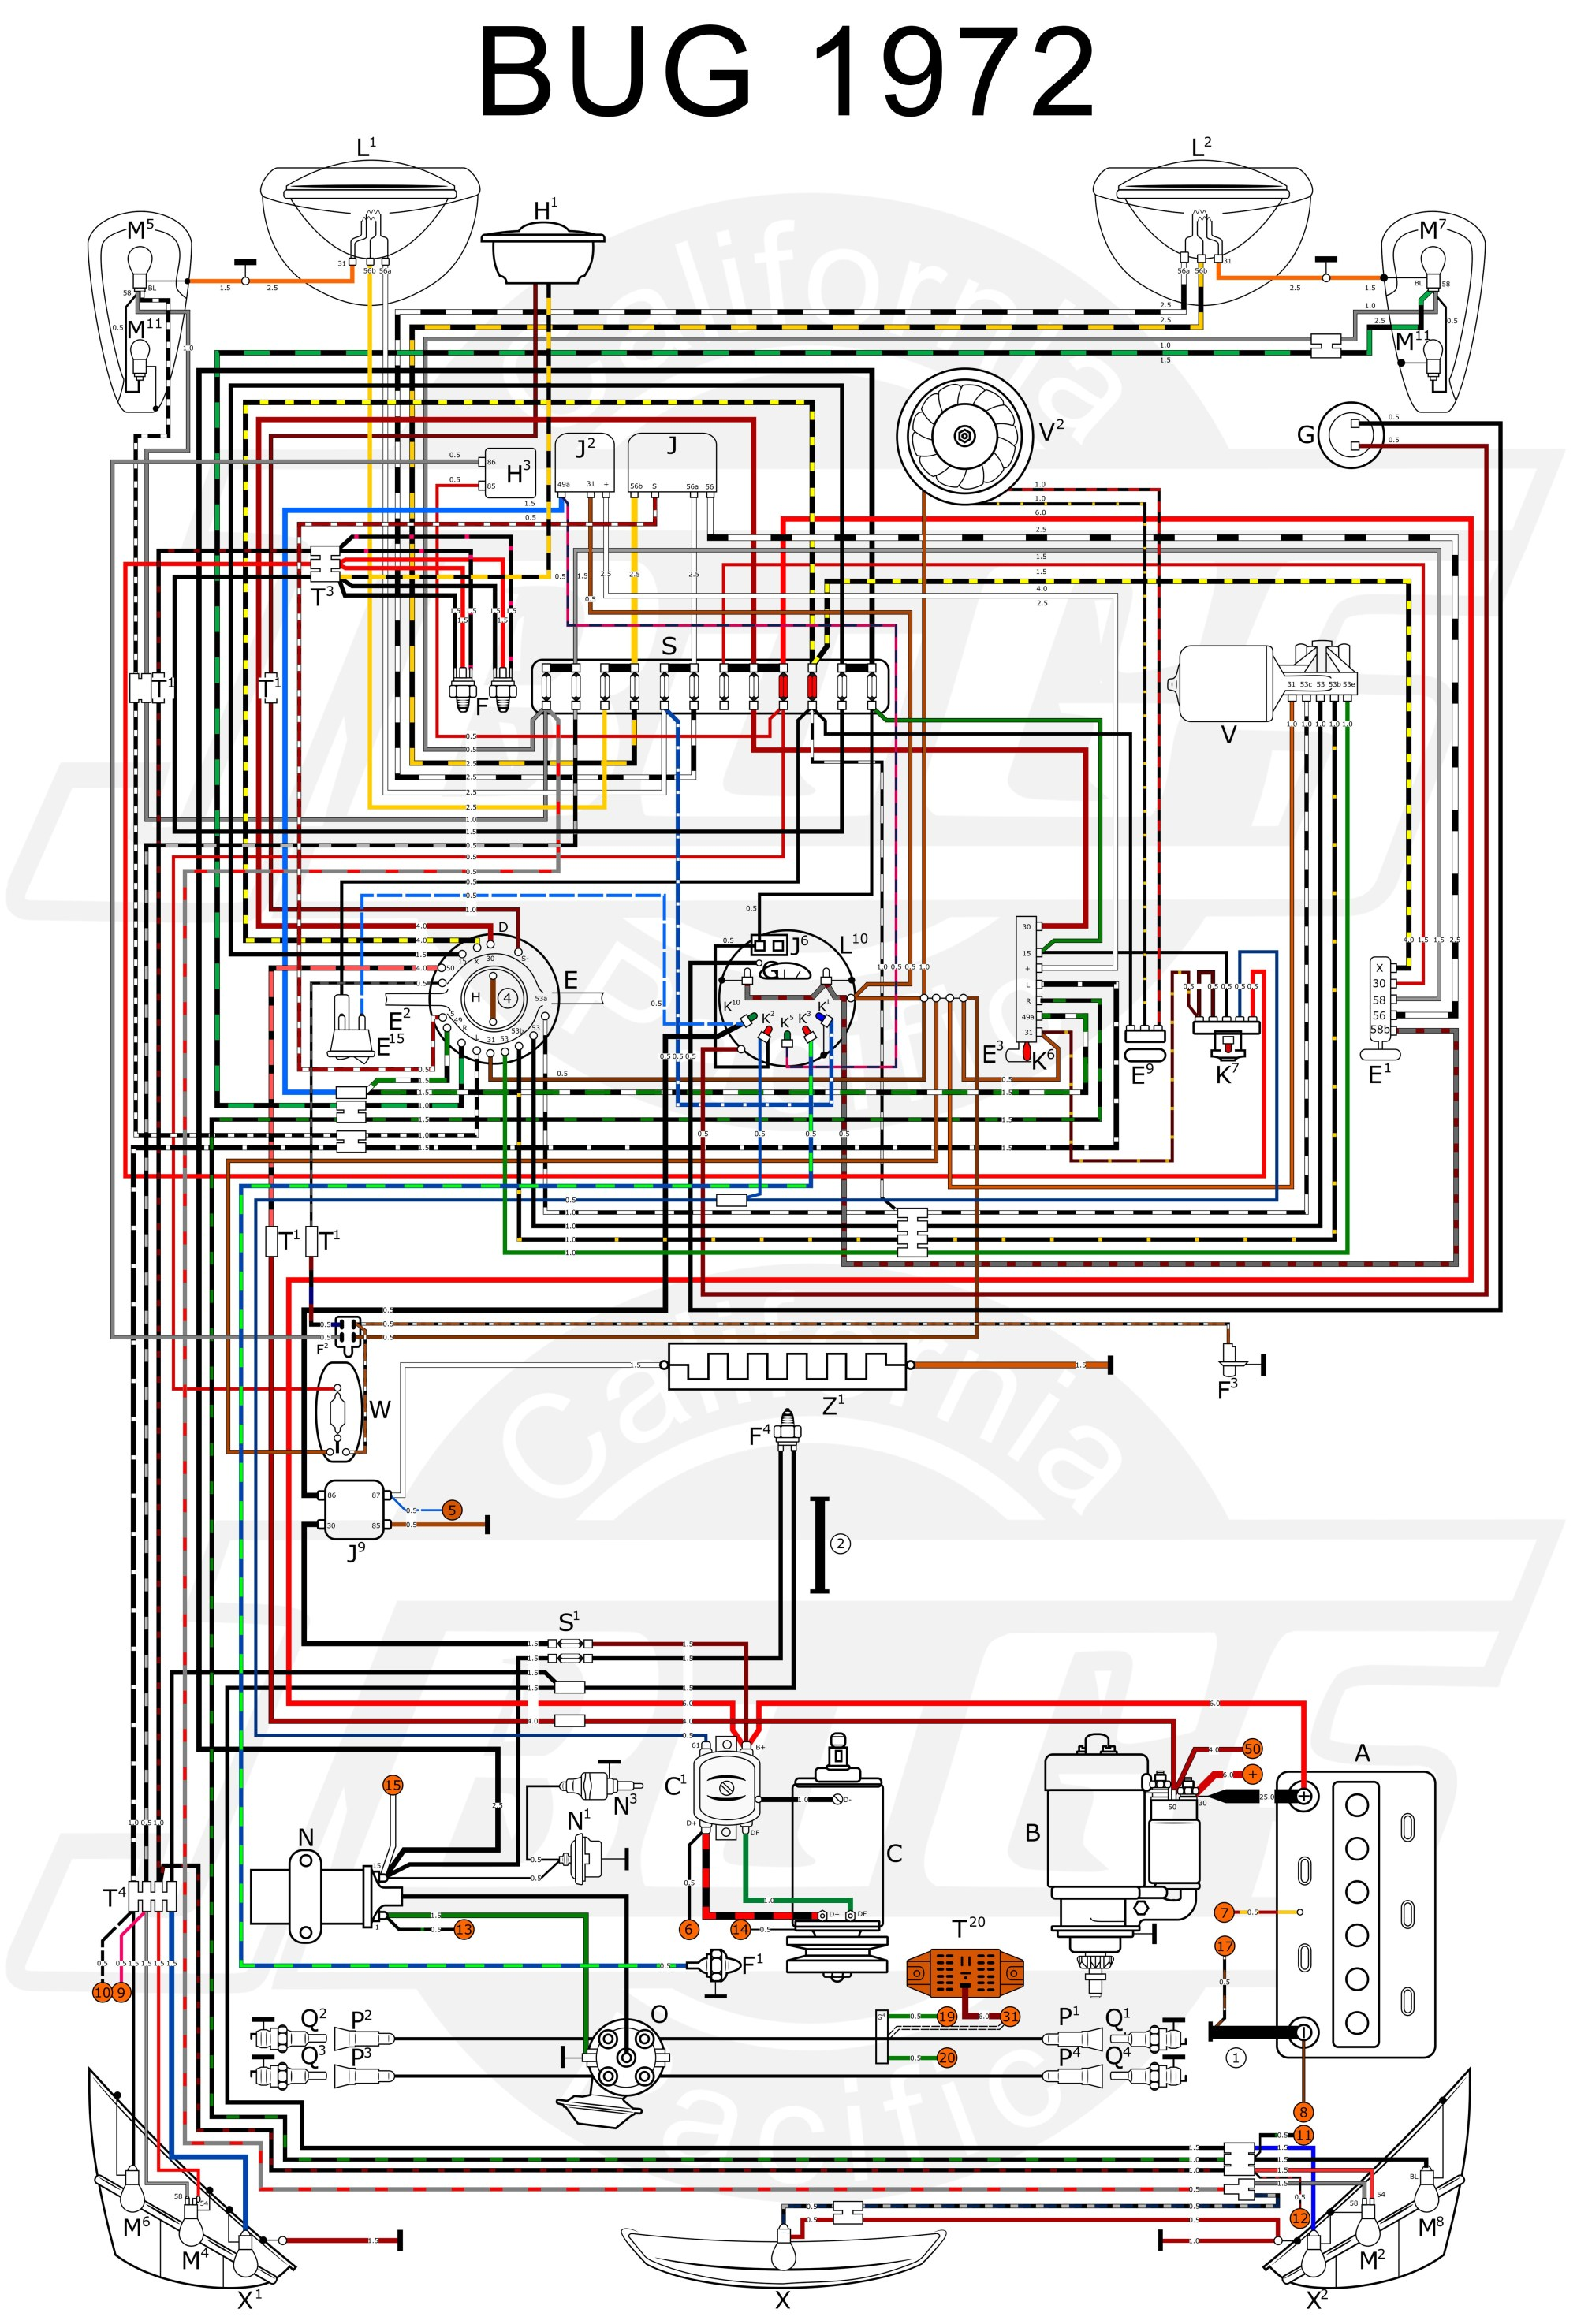 hight resolution of 2001 vw beetle engine diagram 1973 vw beetle wiring diagram wiring diagram of 2001 vw beetle